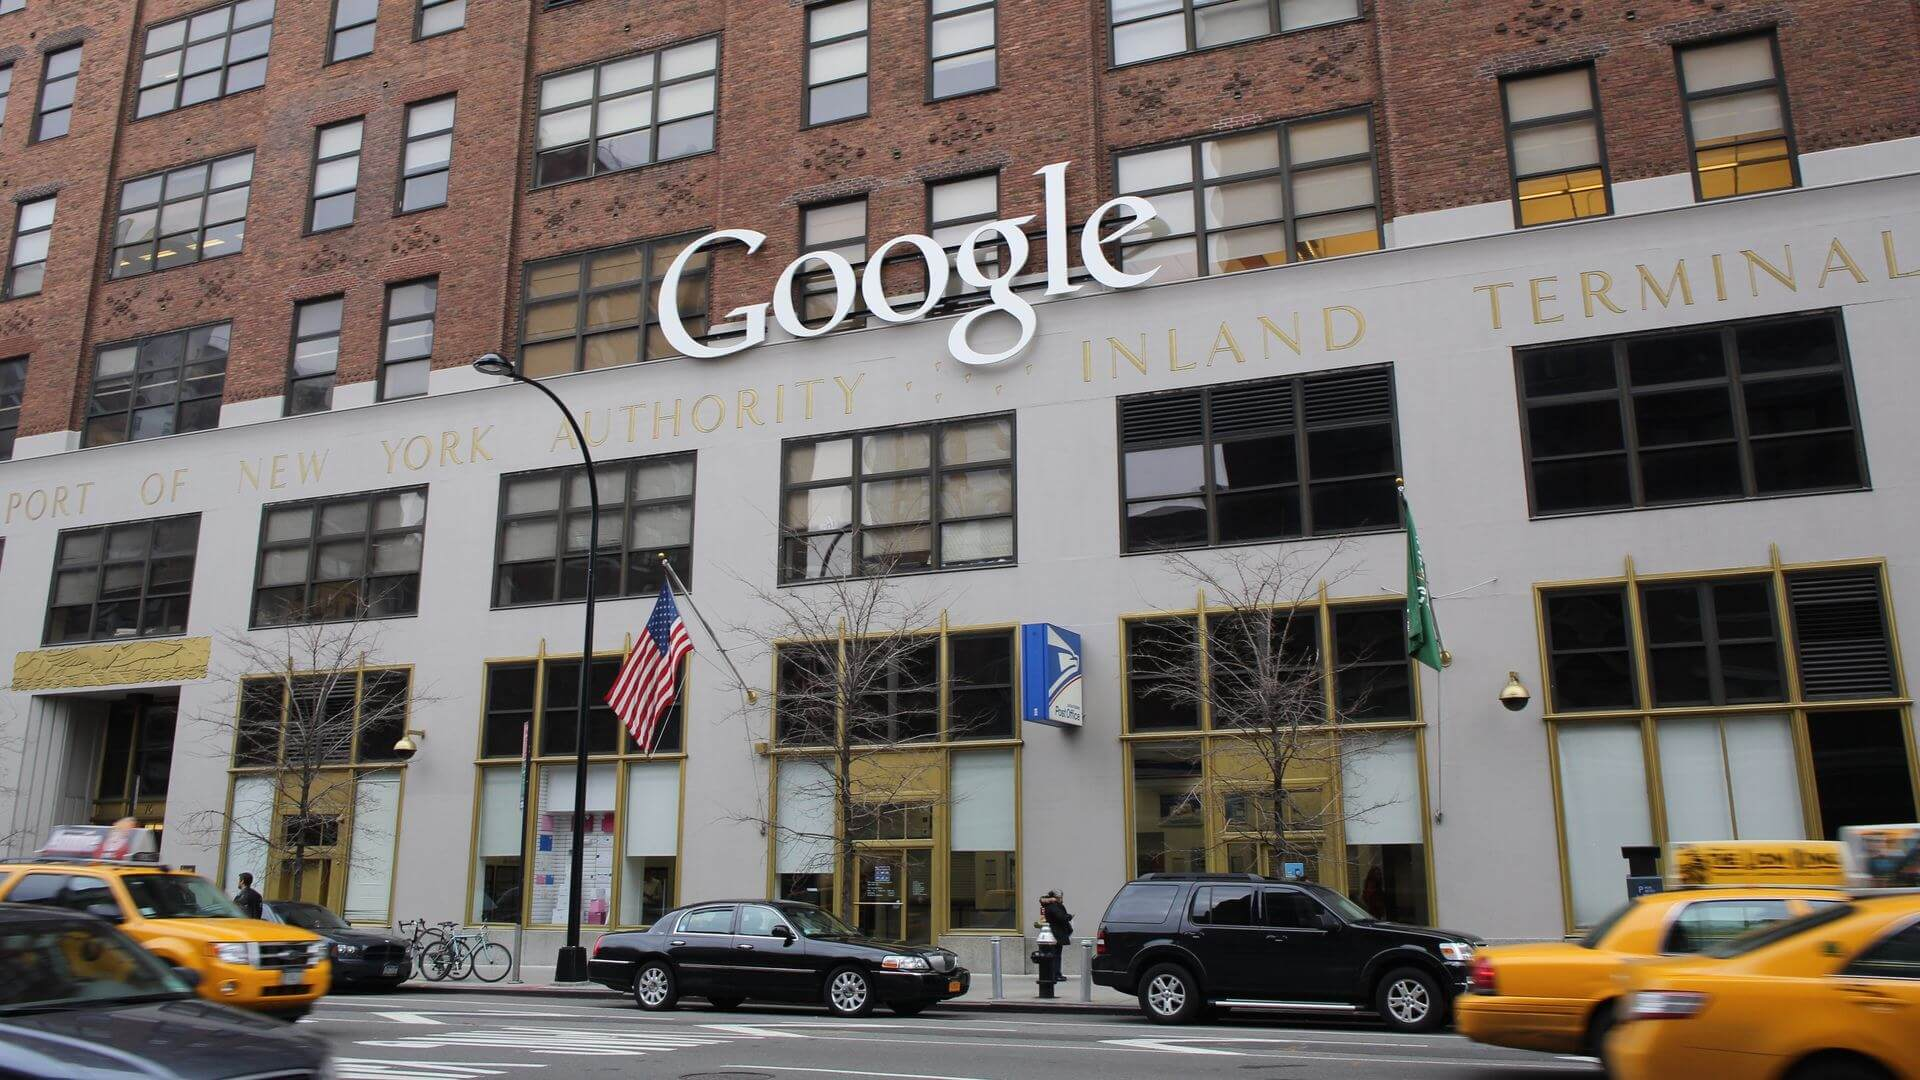 Google to Spend $1 Billion to Establish New Campus in New York City